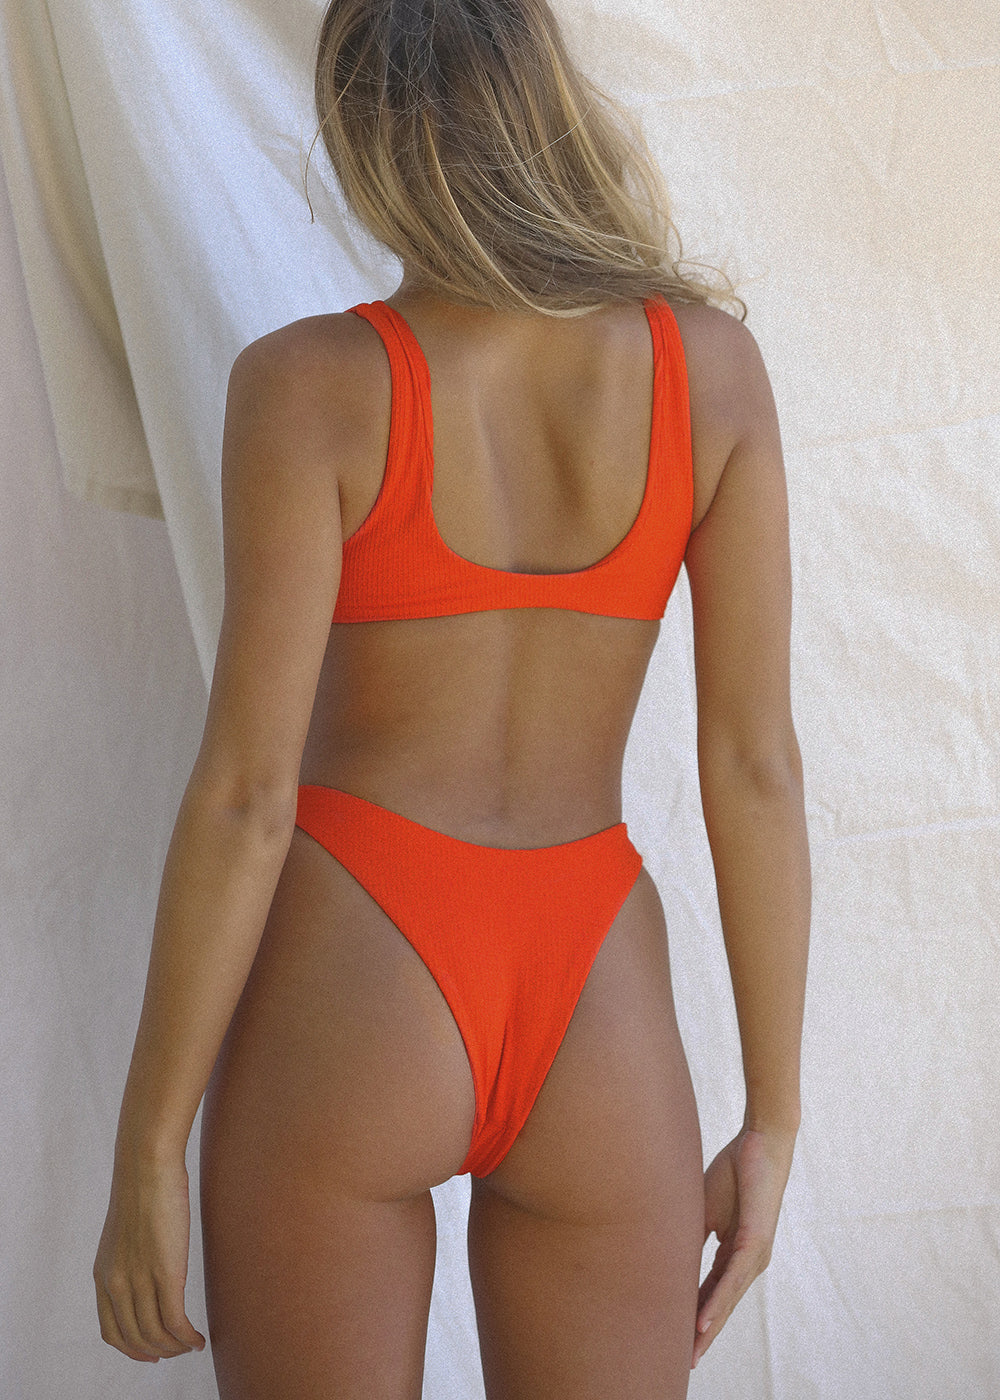 TOAST SWIM High Hip Bottom in WAFFLE |Red Orange|